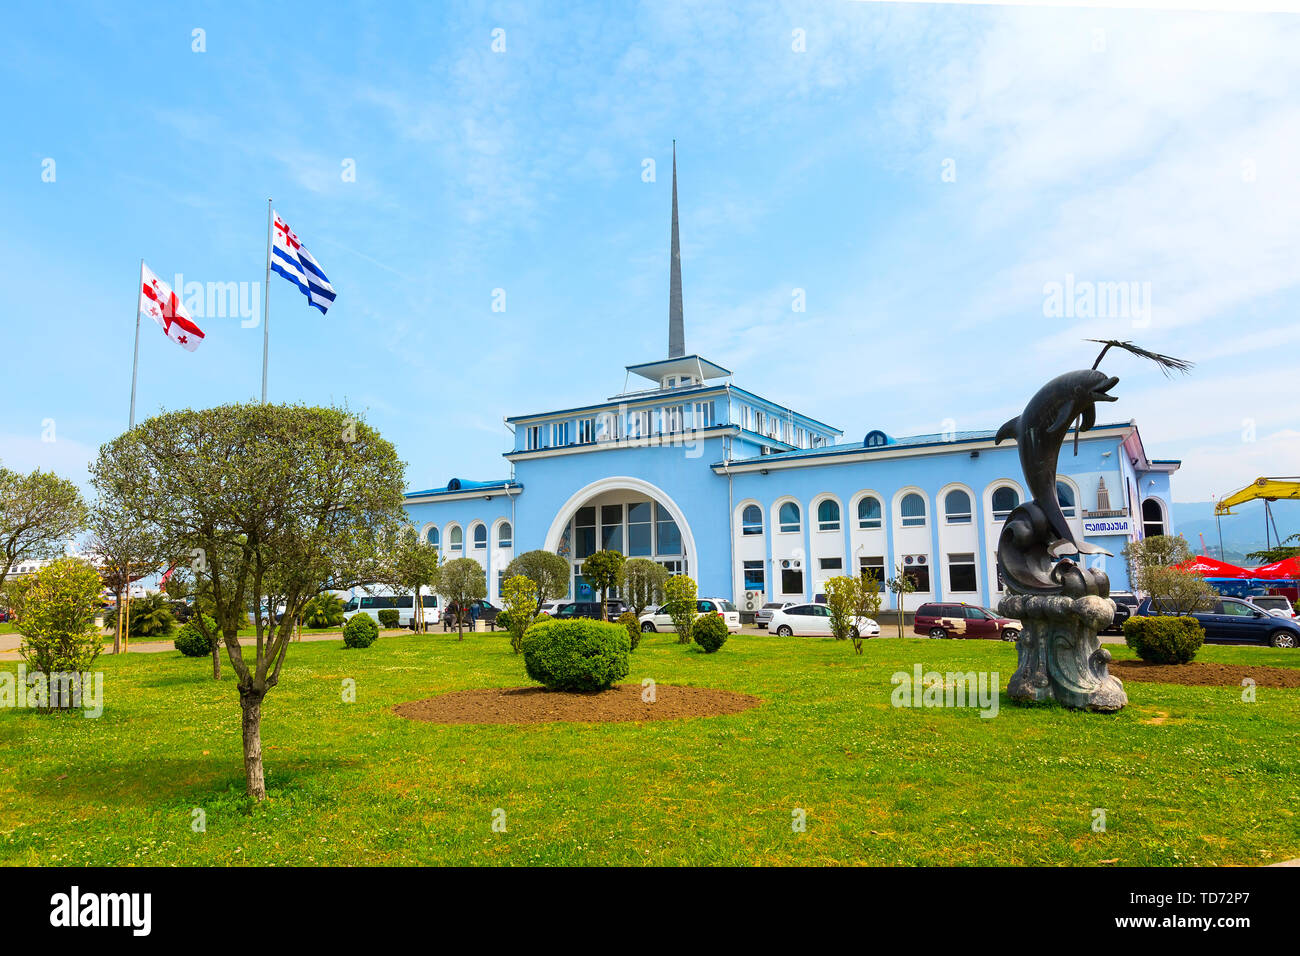 Batumi, Georgia - May 2, 2017: City panoramic landscape with Batumi Sea Port at summer Black sea resort - Stock Image